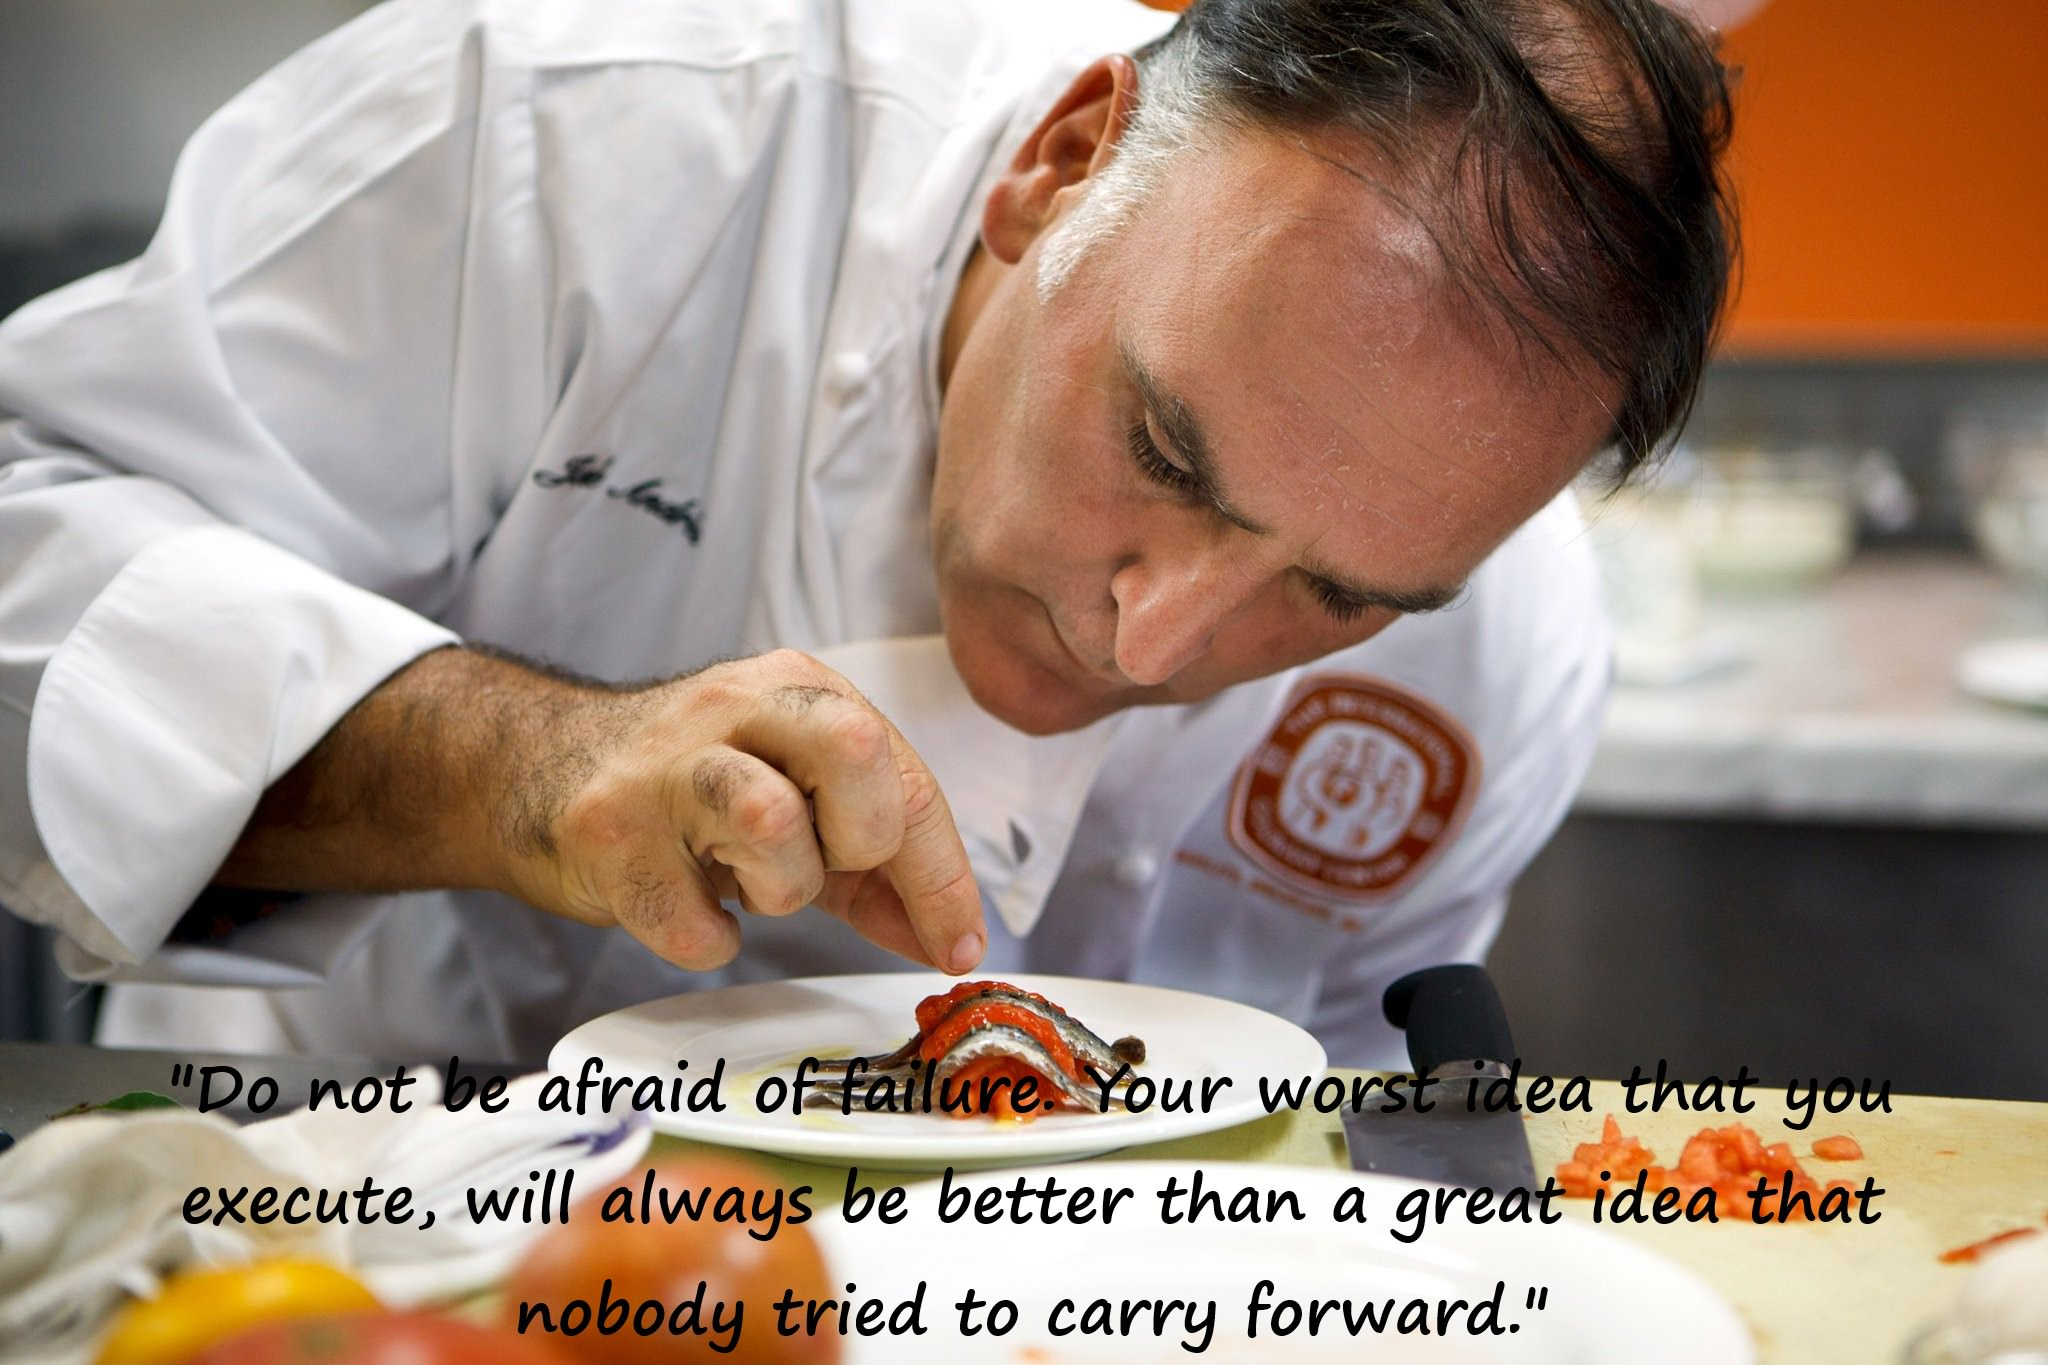 """Do not be afraid of failure. Your worst idea that you execute, will always be better than a great idea that nobody tried to carry forward."" – Jose Andres [1024 × 683] [OC]"